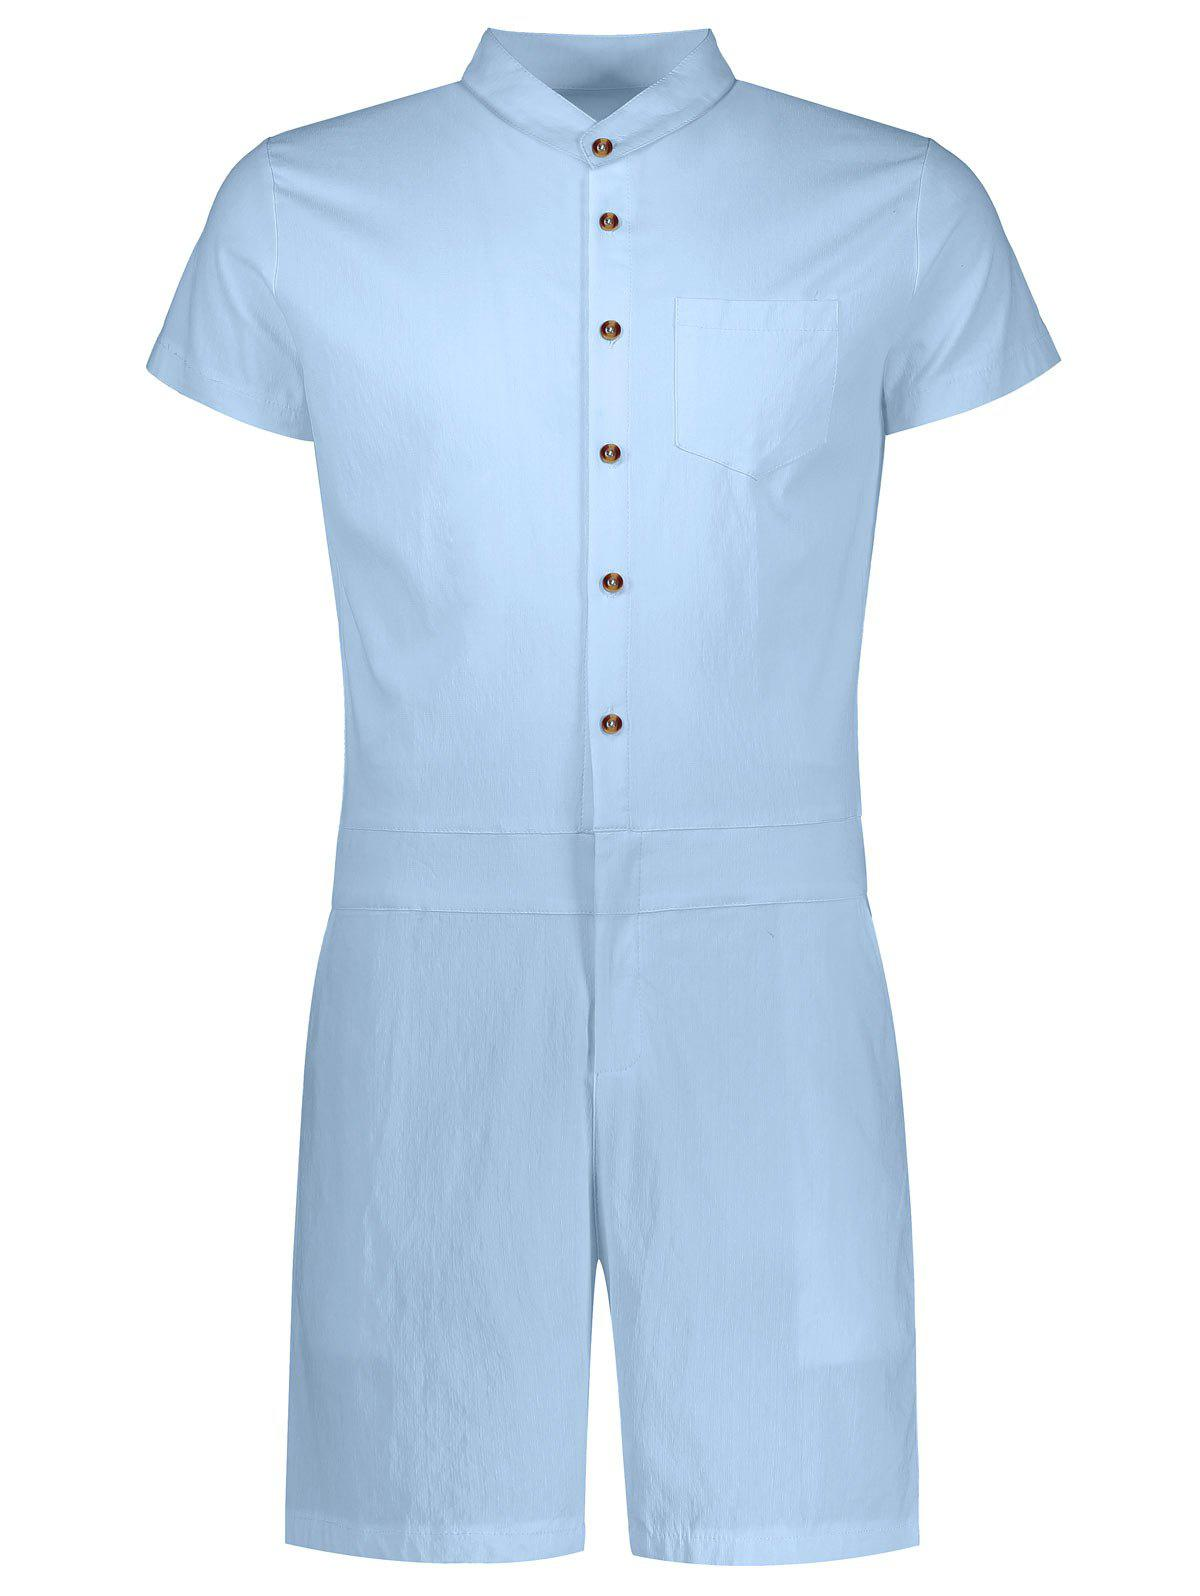 Single Breasted Short Sleeve Romper - LIGHT BLUE XL